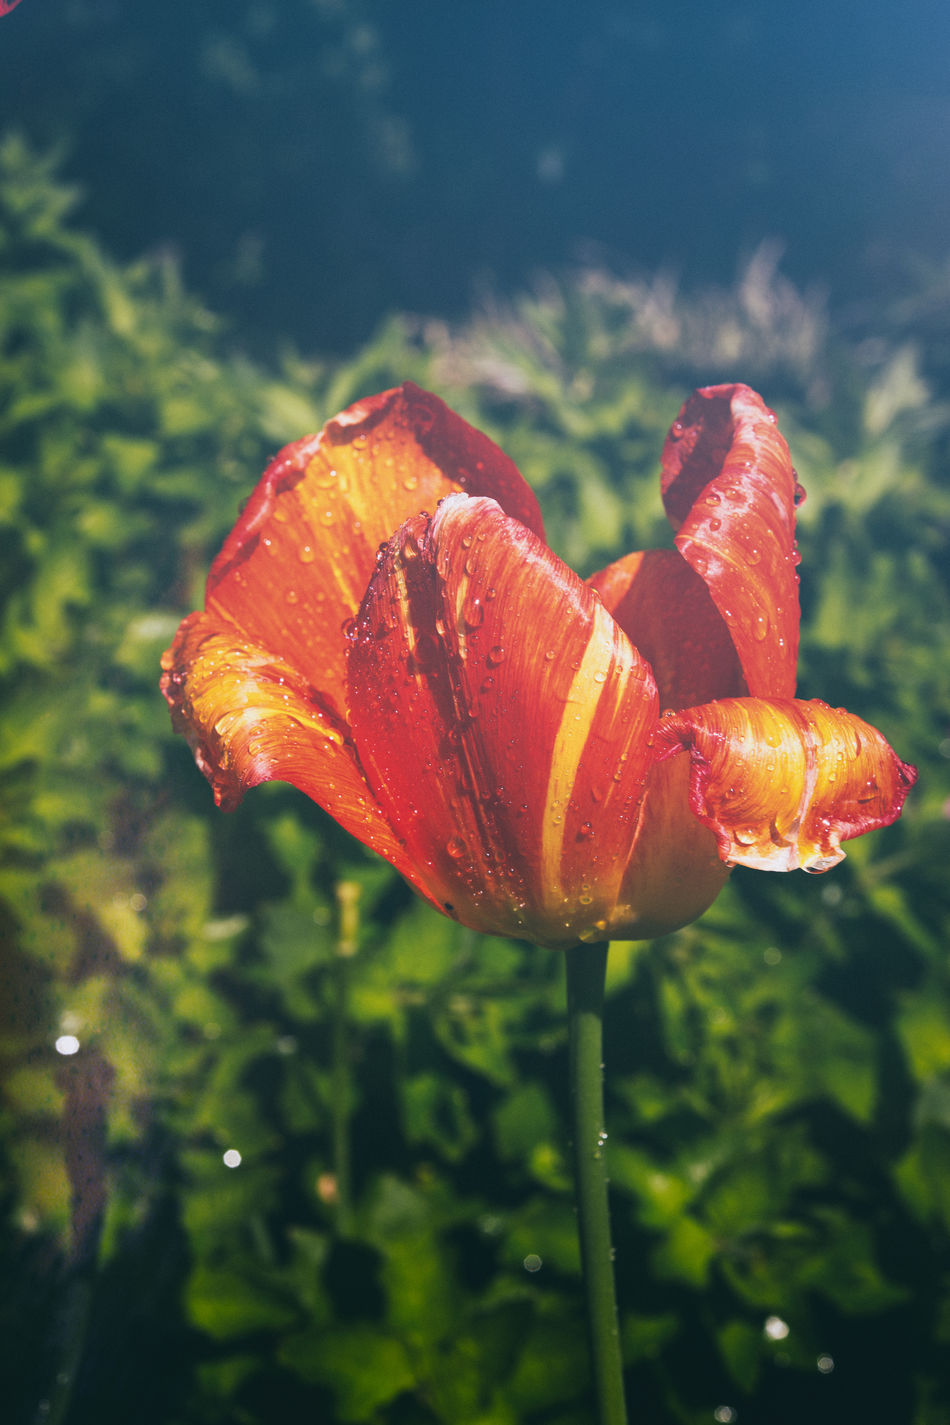 Tulip Beauty In Nature Blooming Close-up Day Day Lily Drop Flower Flower Head Fragility Freshness Garden Growth Leaf Nature No People Outdoors Petal Plant Poetry In Nature Red Rot Tulip Tulpe Water Wet